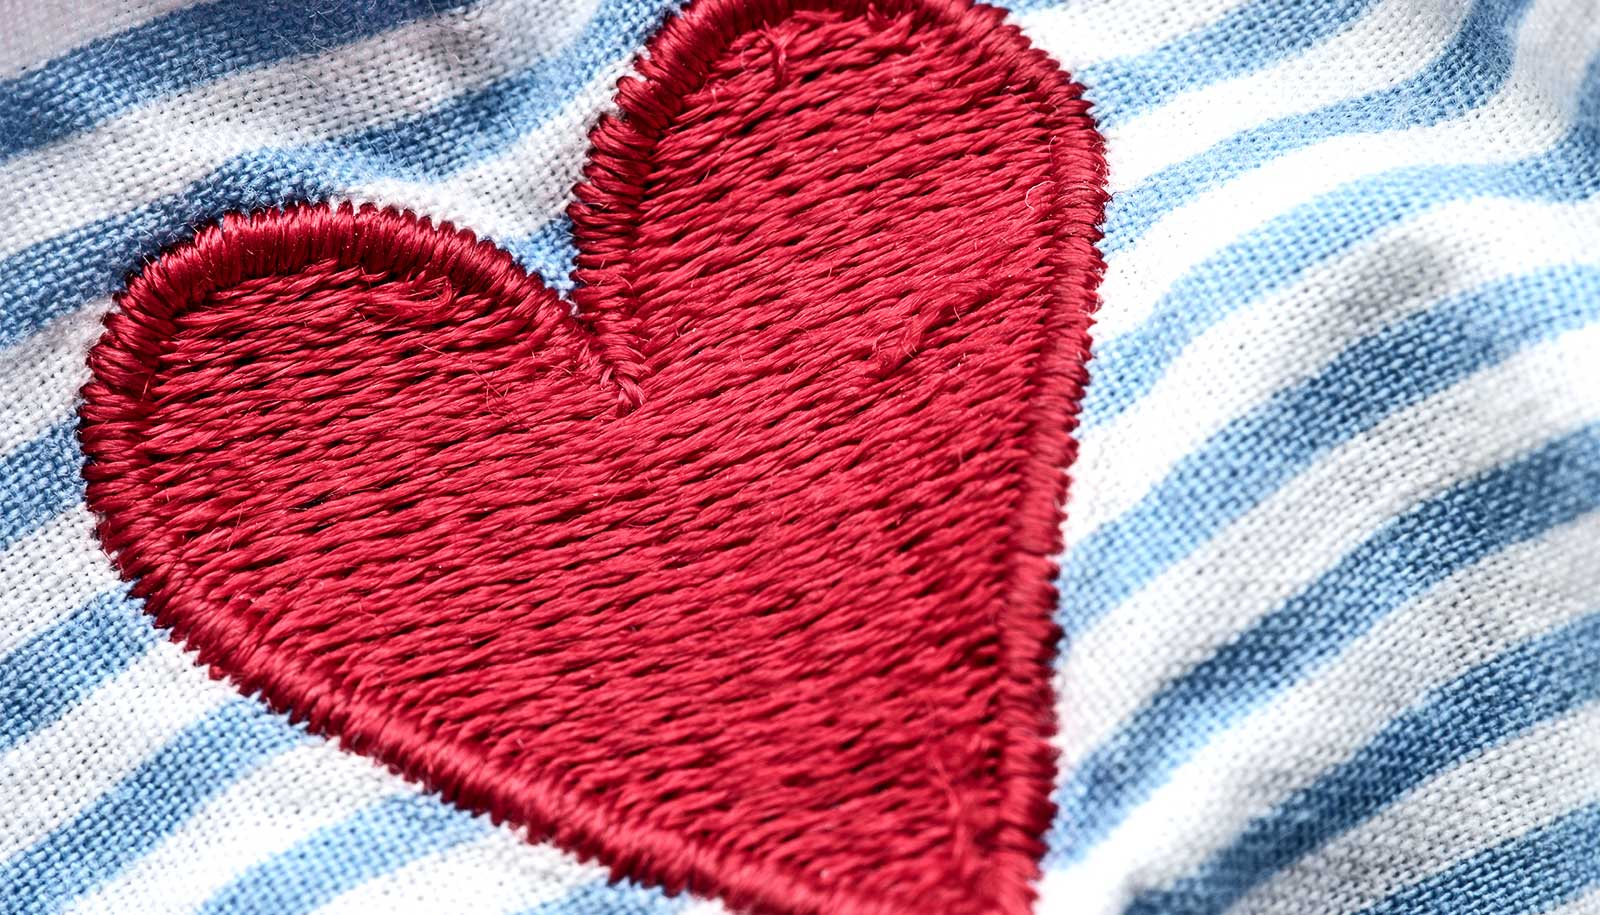 Sticky patch reduces damage after heart attack